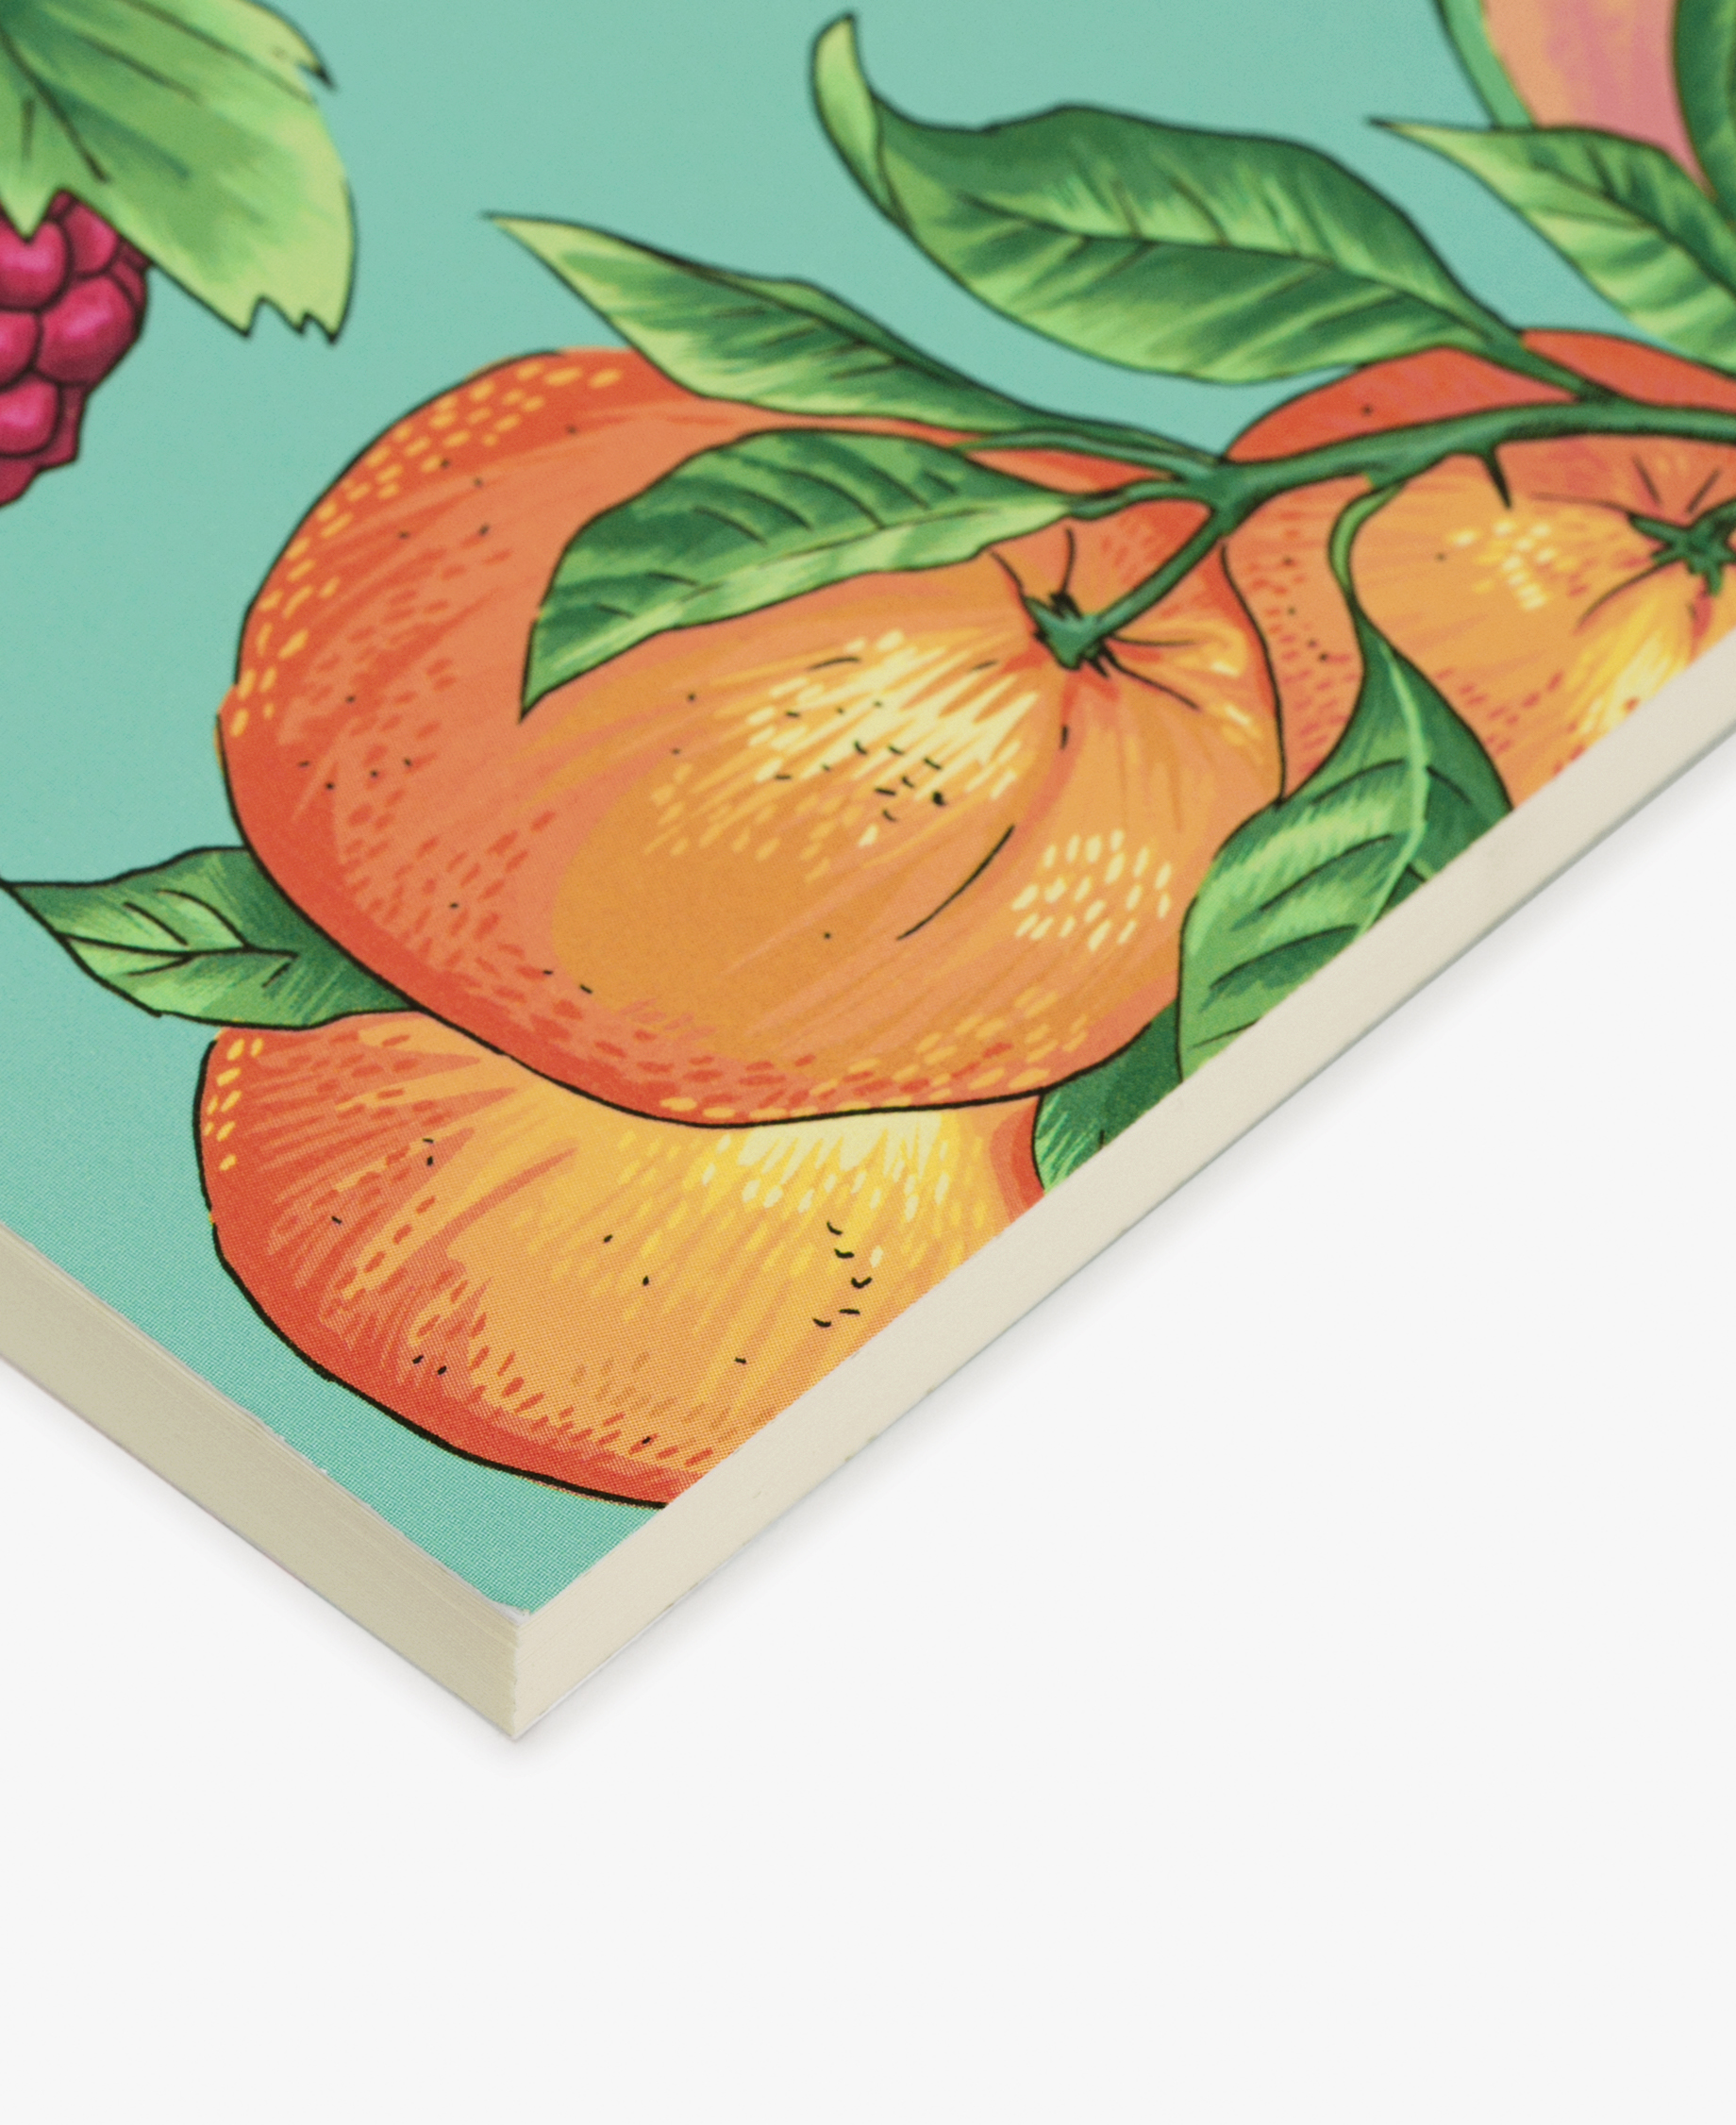 journal notebook with fruits design